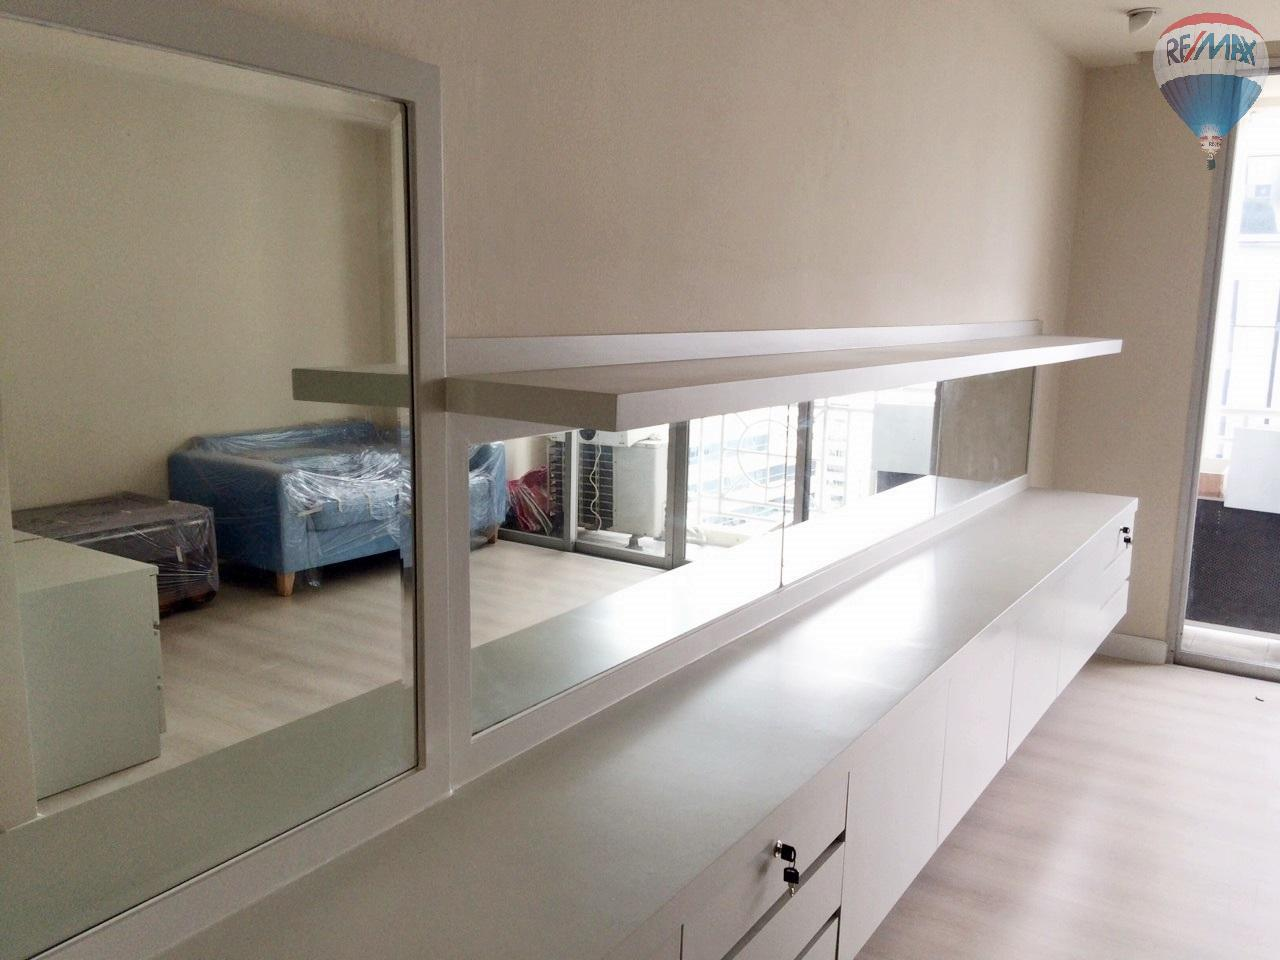 RE/MAX Properties Agency's 2 Bedroom 86 sq.m. for Rent at Asoke Place 13